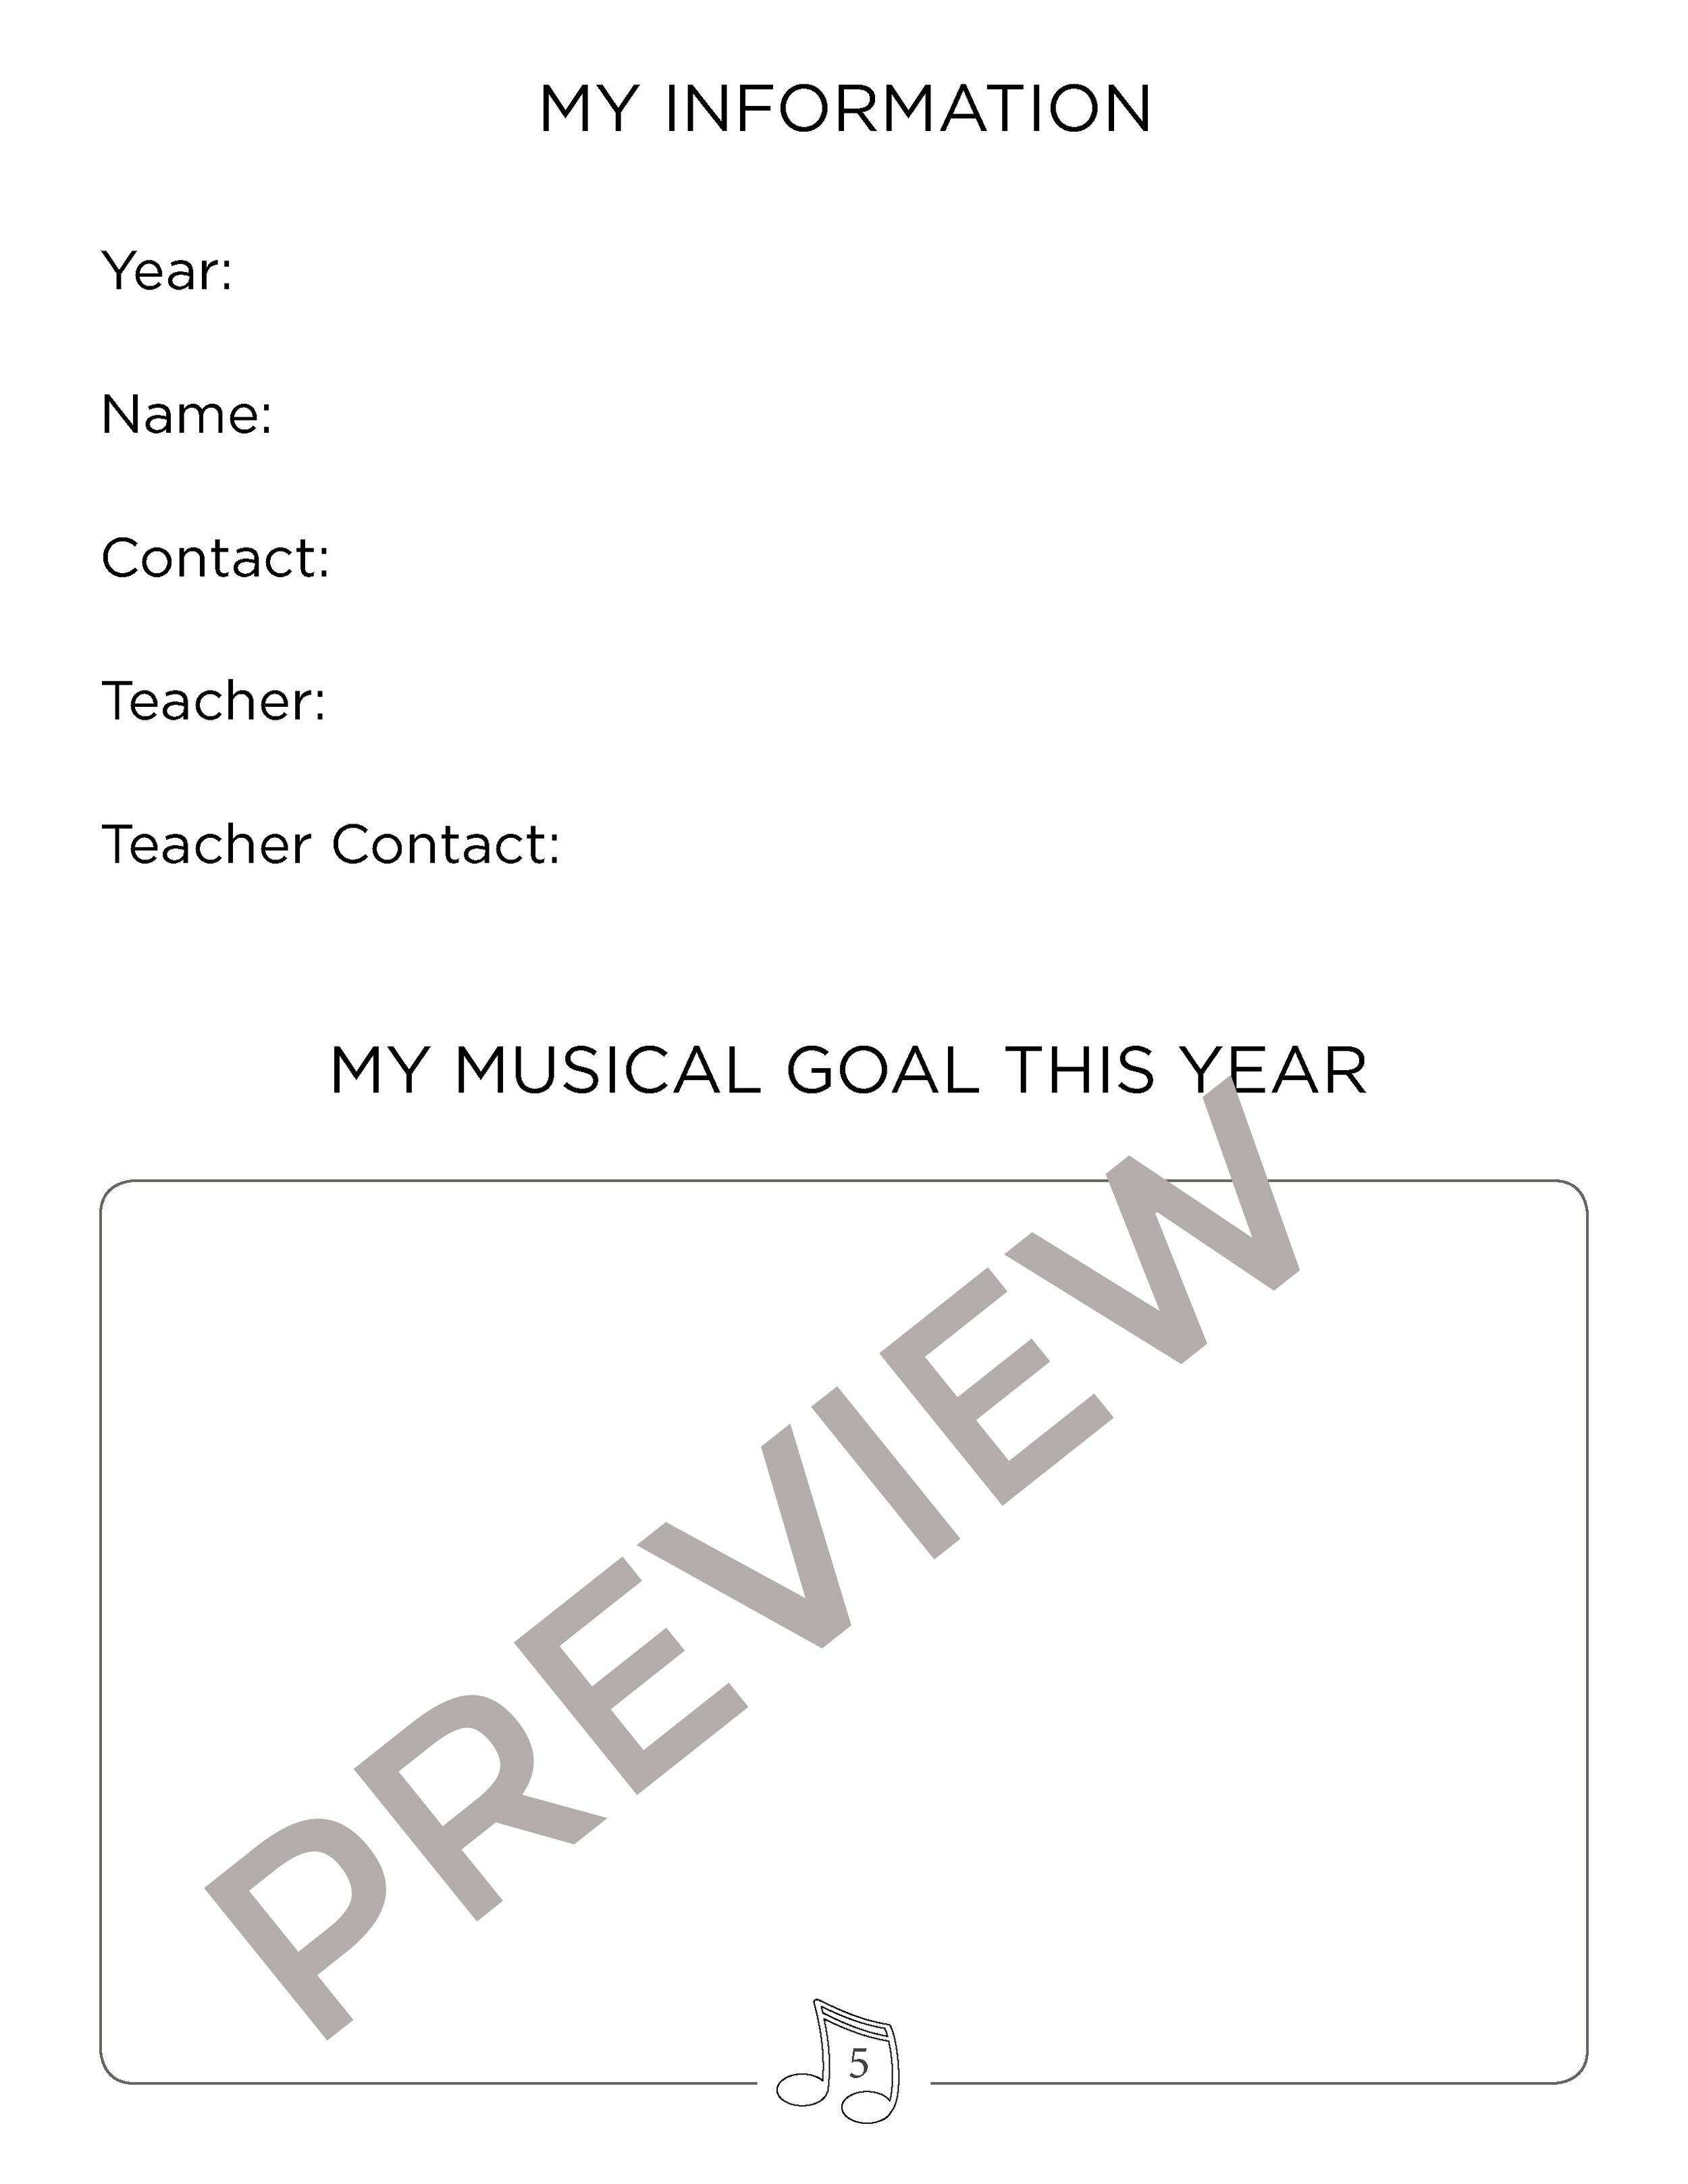 Setting Goals - Creating goals is such an important and powerful step to take with each student at the beginning of every year. What is their goal in music? Maybe they would like to perform in a recital or compete in a festival. Maybe they want to memorise a certain number of pieces or build up a good practice routine. Setting goals and checking in with the goal throughout the year helps motivate and encourage students, parents and teachers!